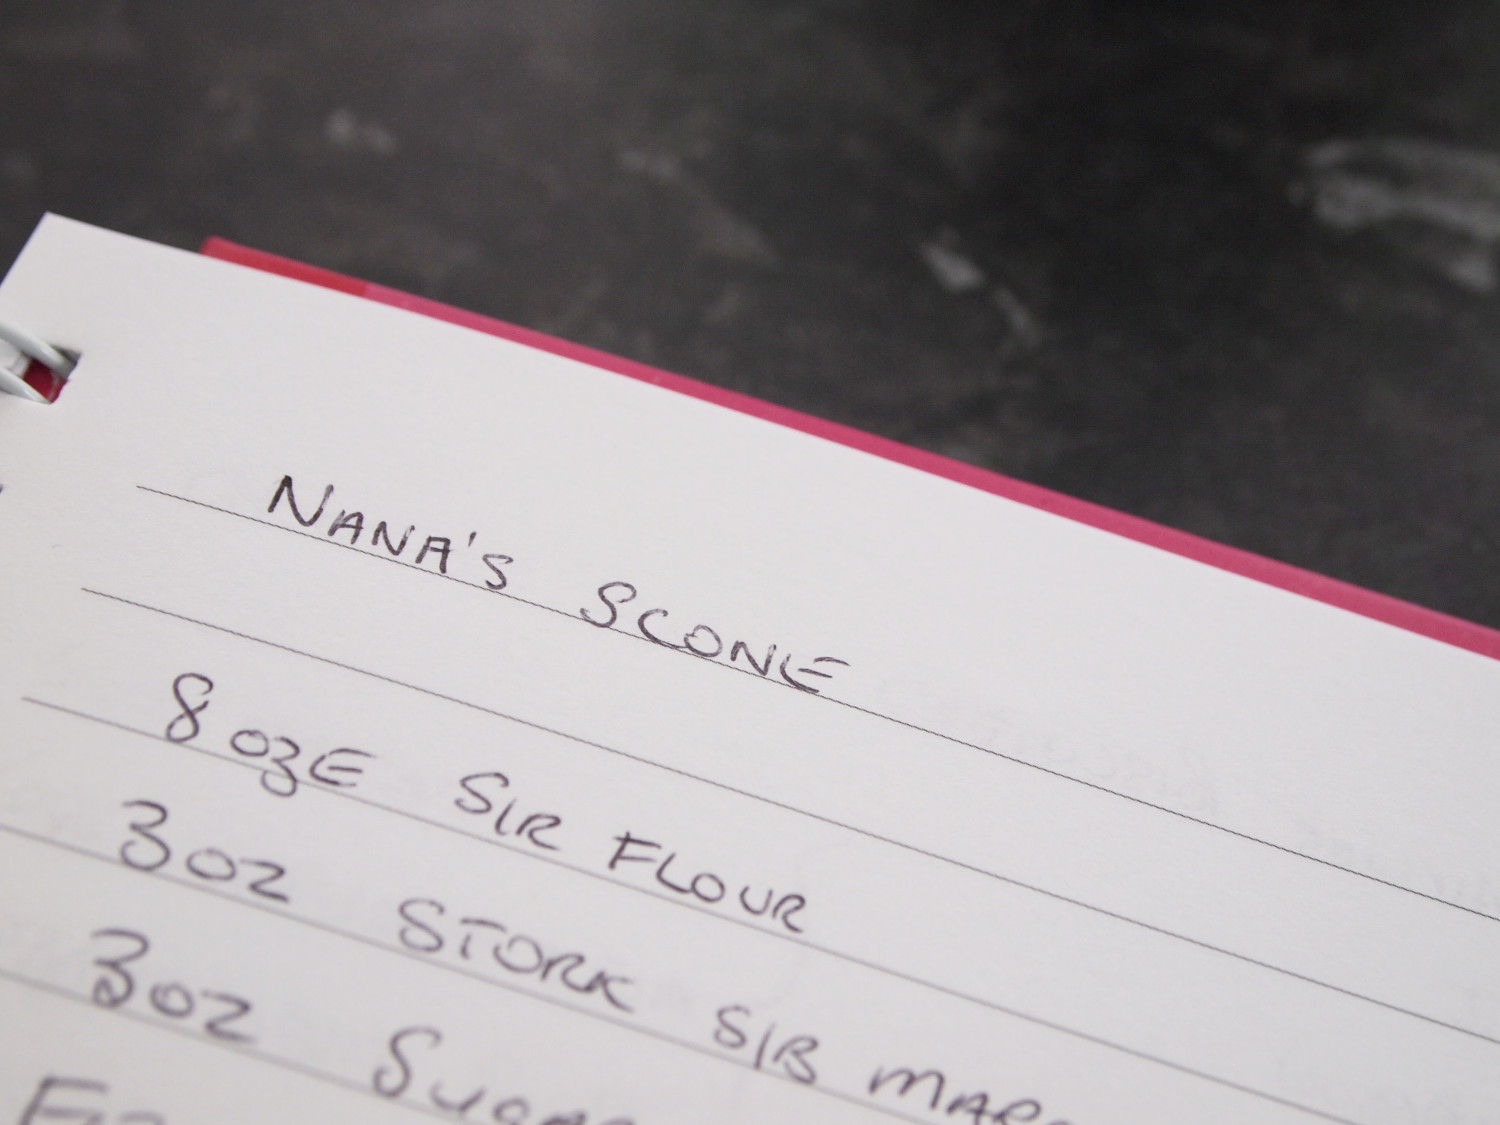 Nana's homemade scones